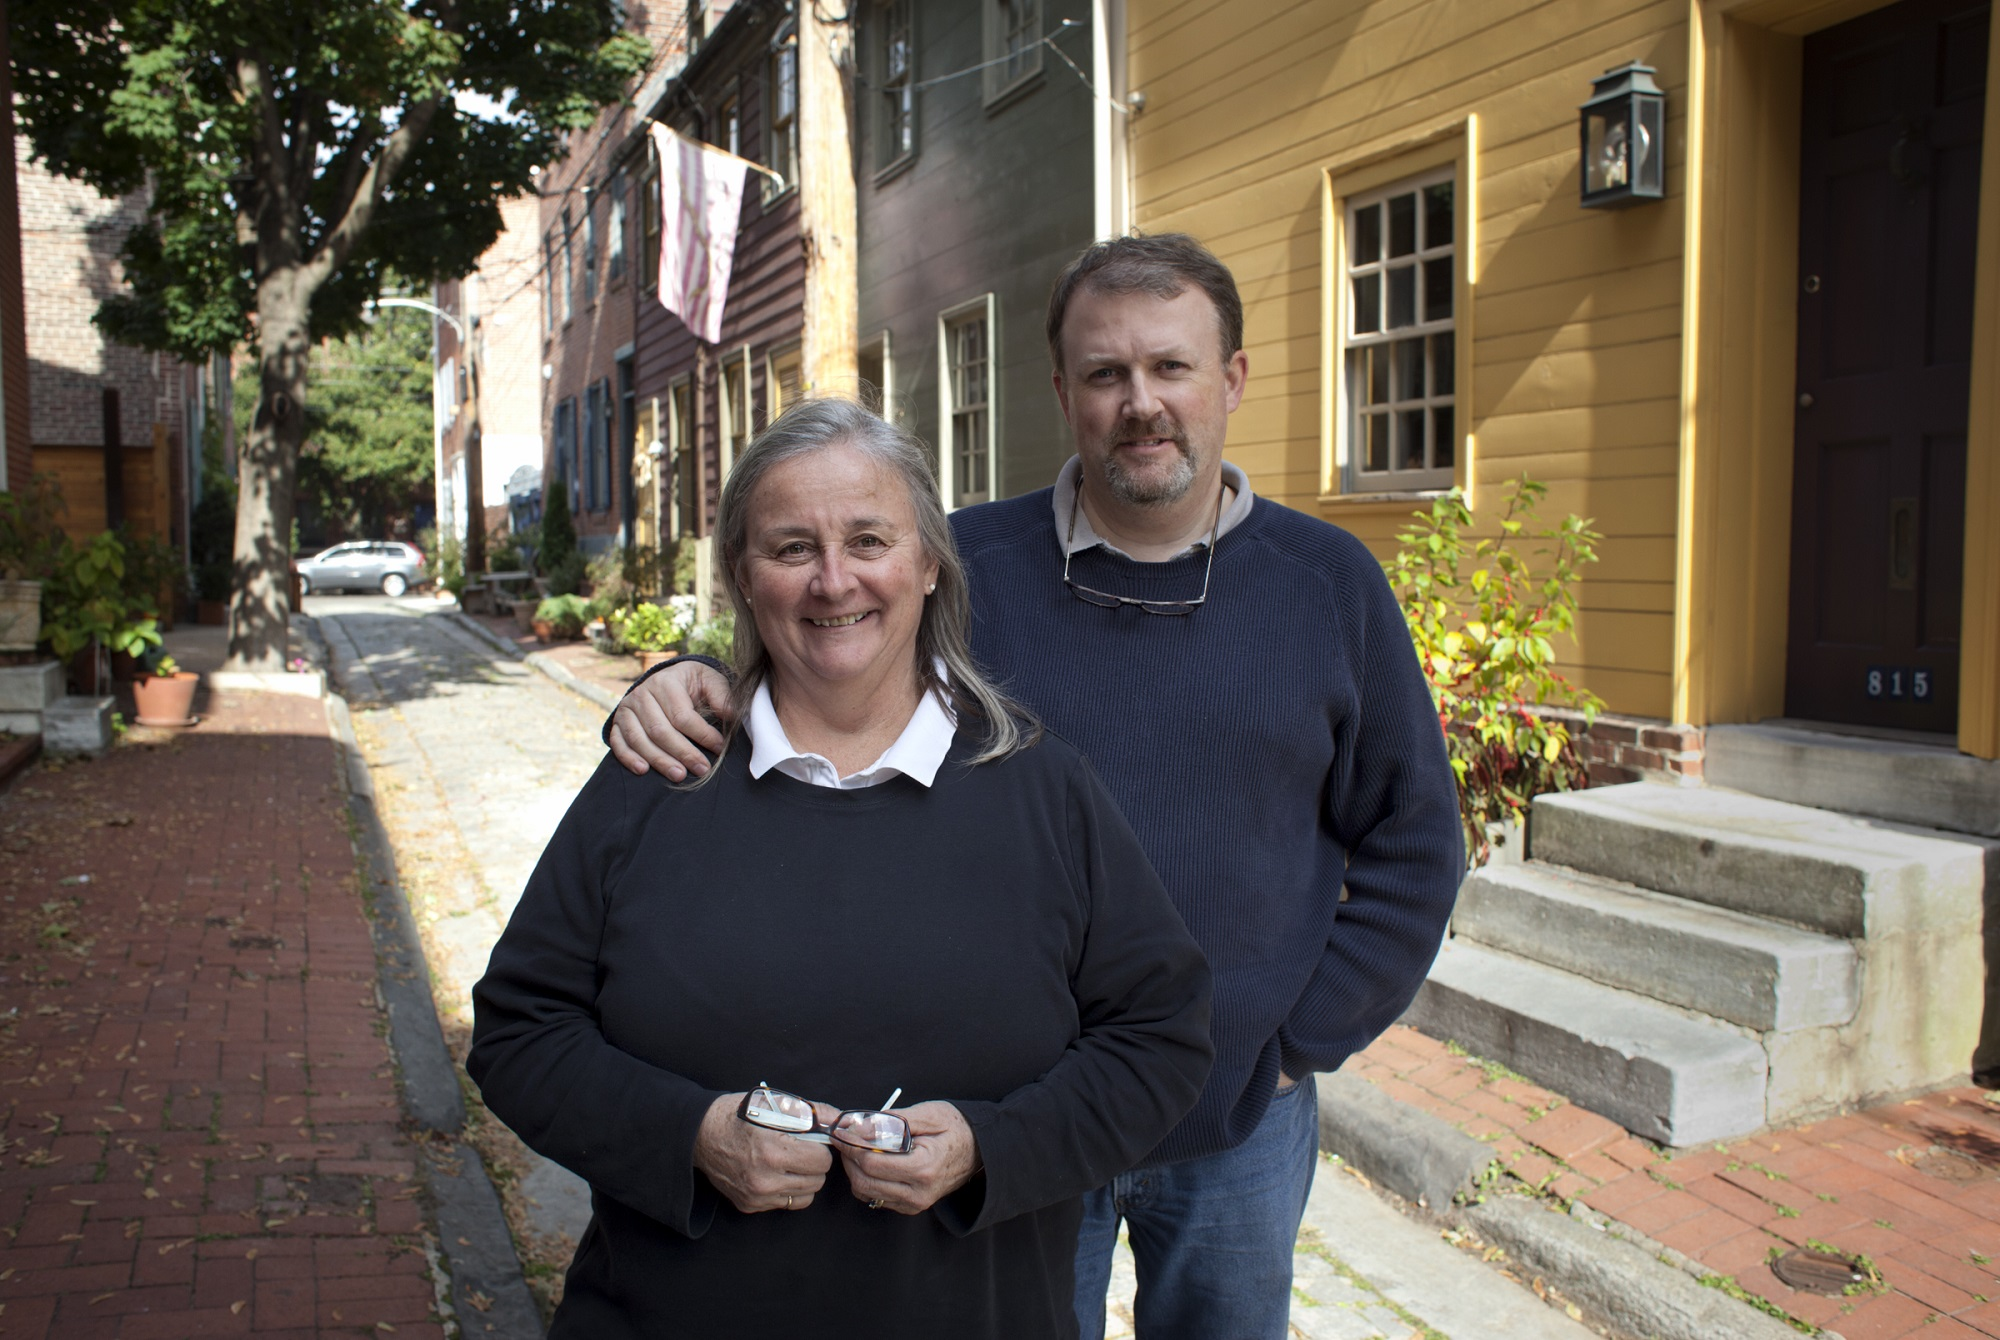 Alison Towers and her husband have lived in a trinity home in Queen Village for more than 30 years.